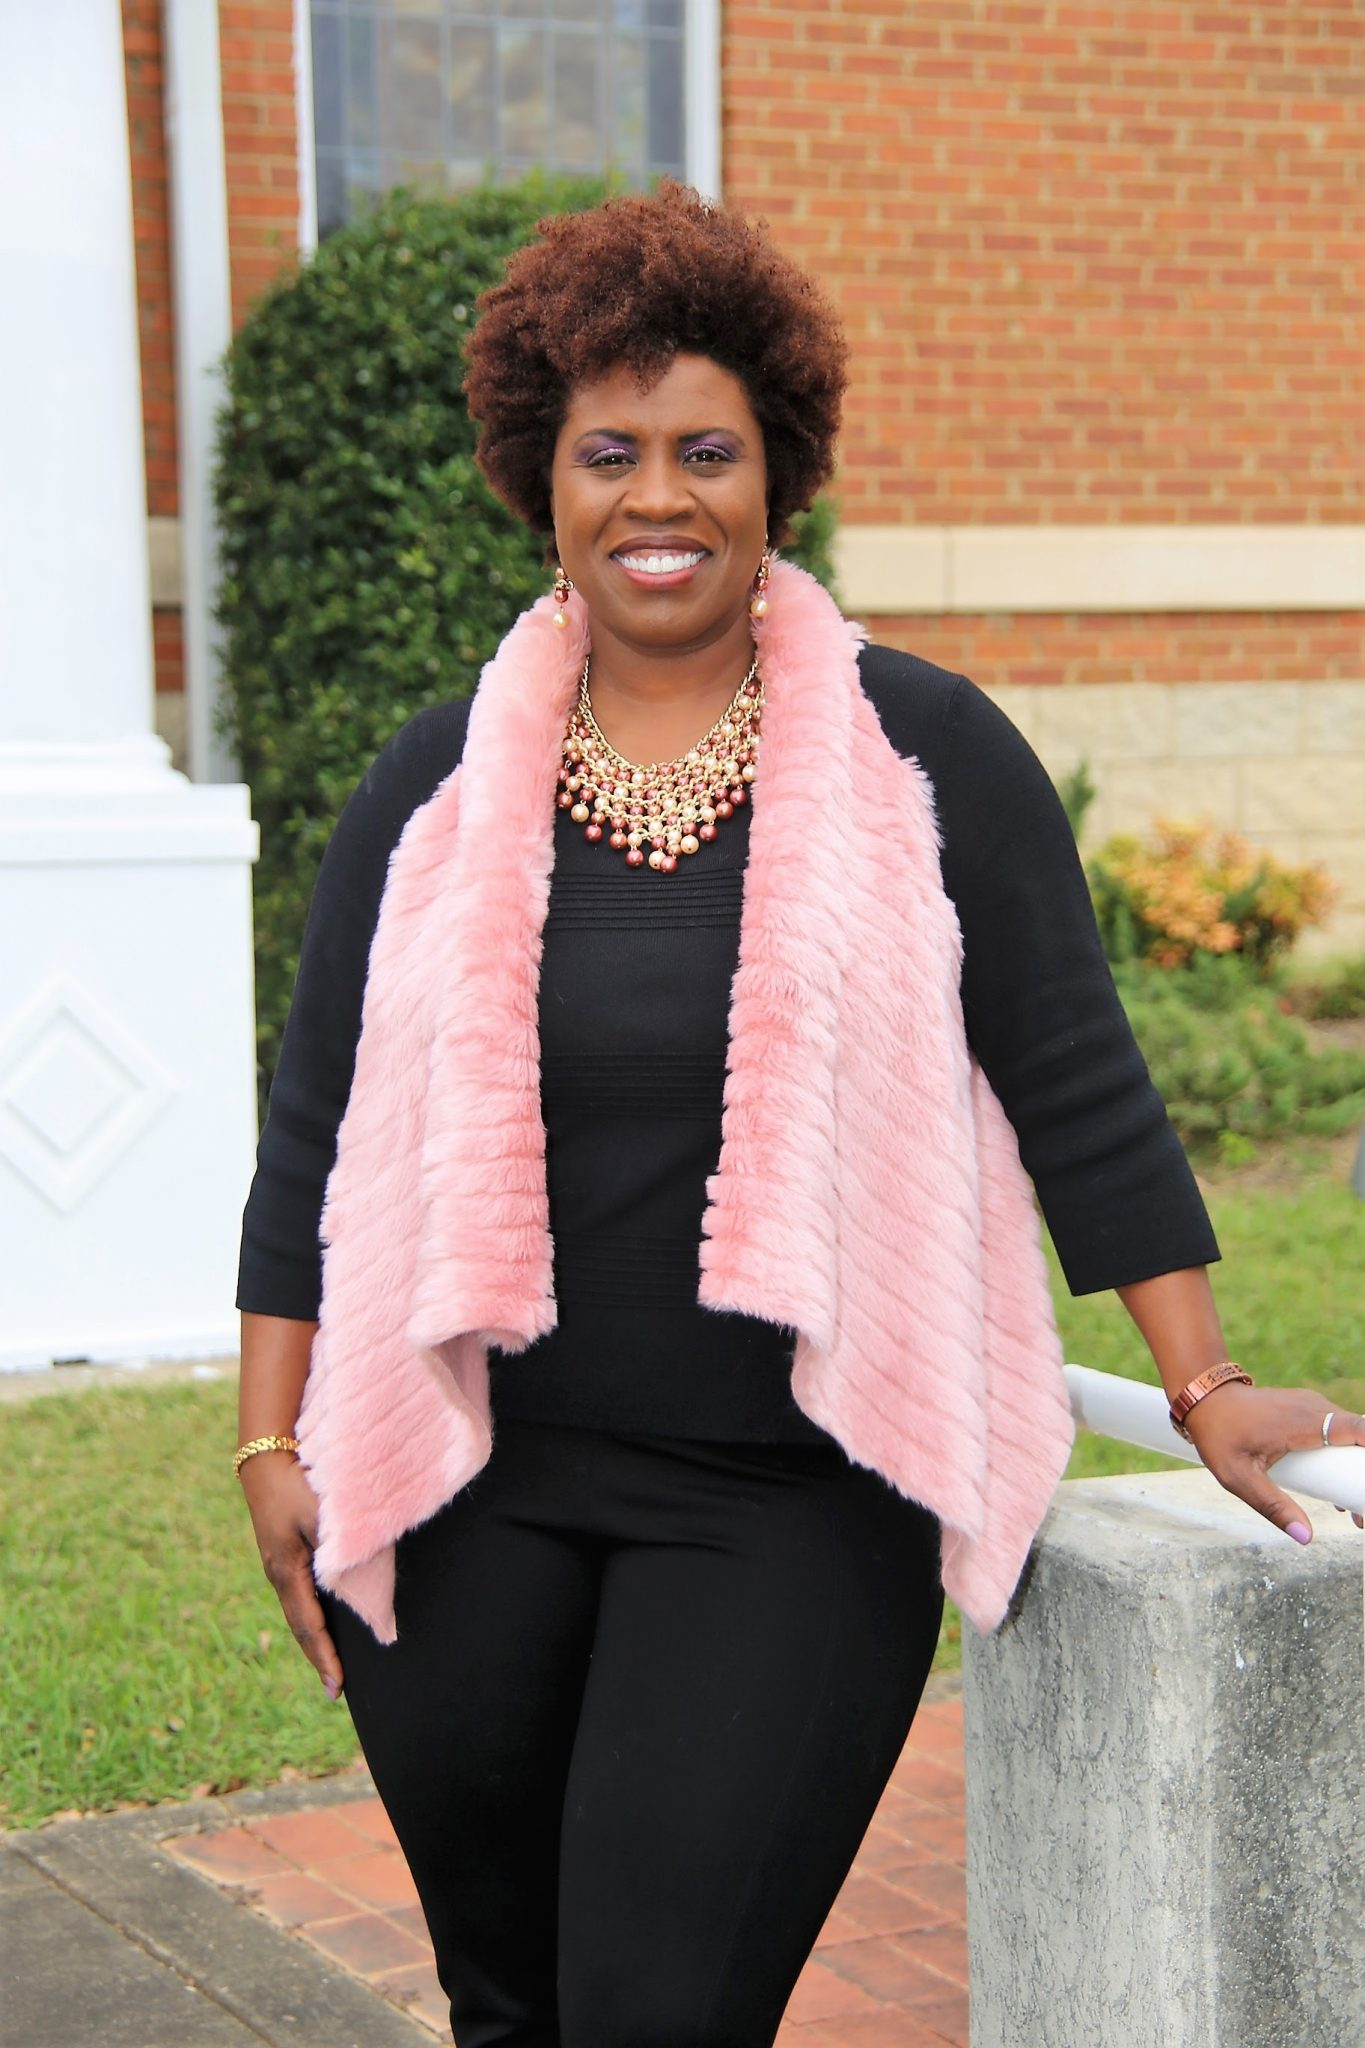 Making a Difference! BOLD Spiritpreneur Lynita Mitchell-Blackwell